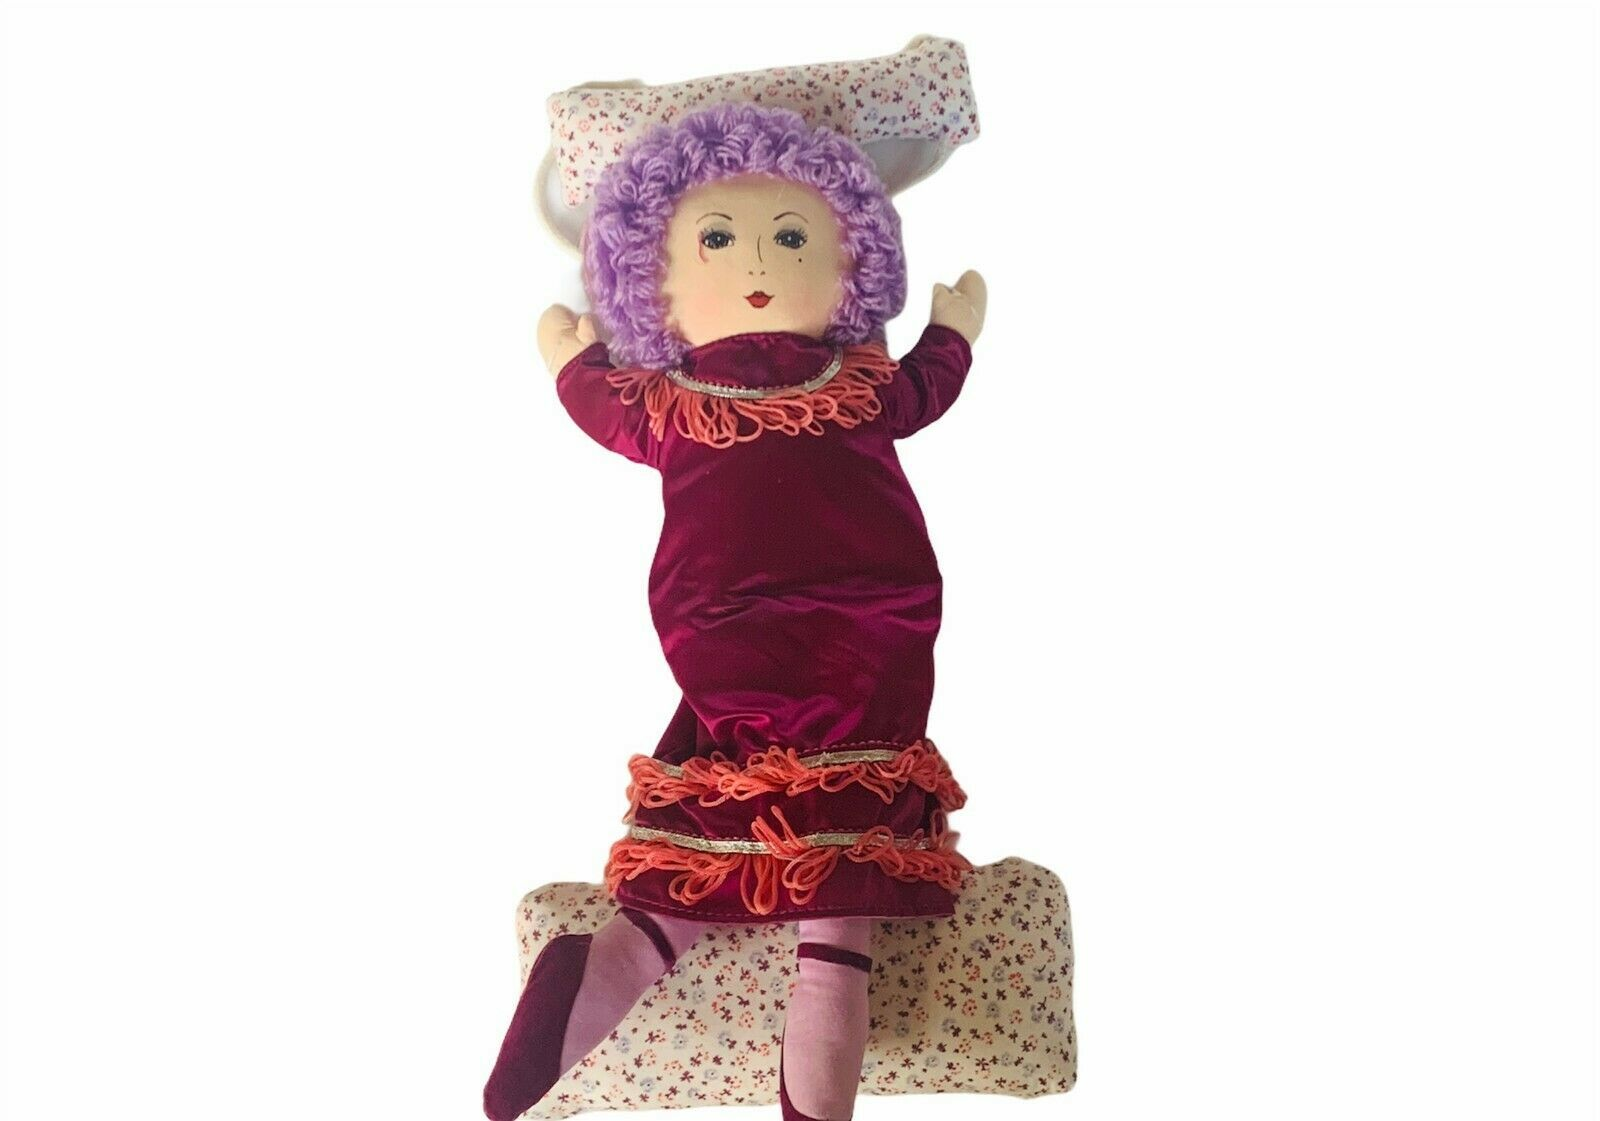 "Primary image for Russ Berrie Doll Swing plush stuffed animal 16"" vtg purple violet hair dress toy"